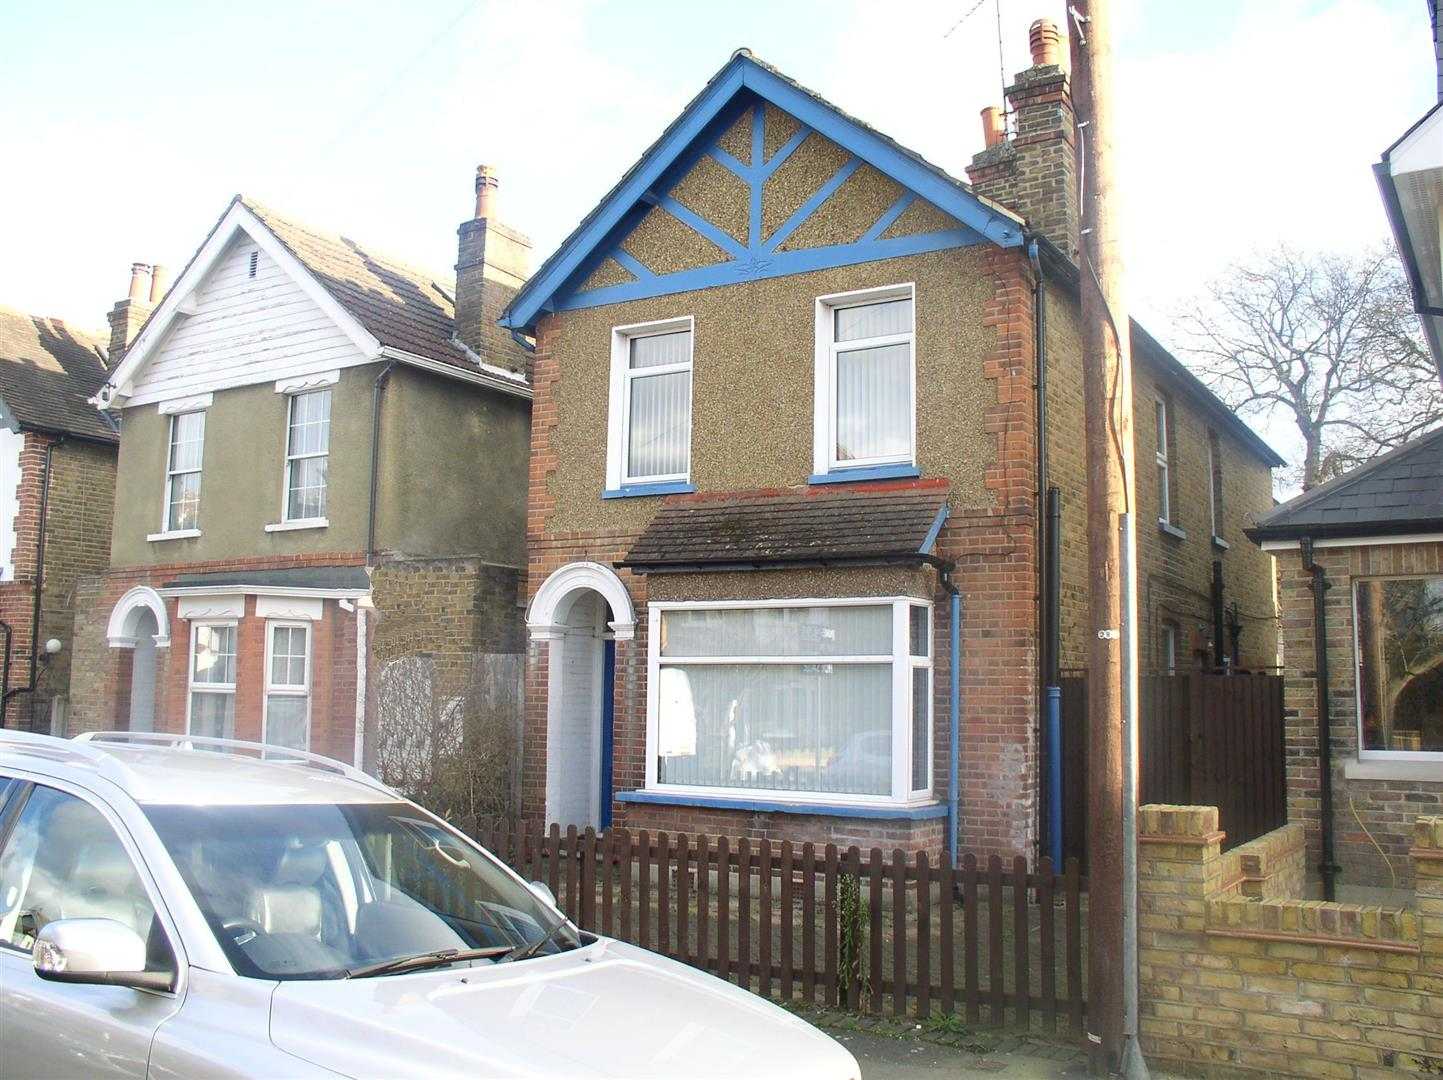 3 Bedrooms Detached House for sale in Kings Road, Walton-On-Thames